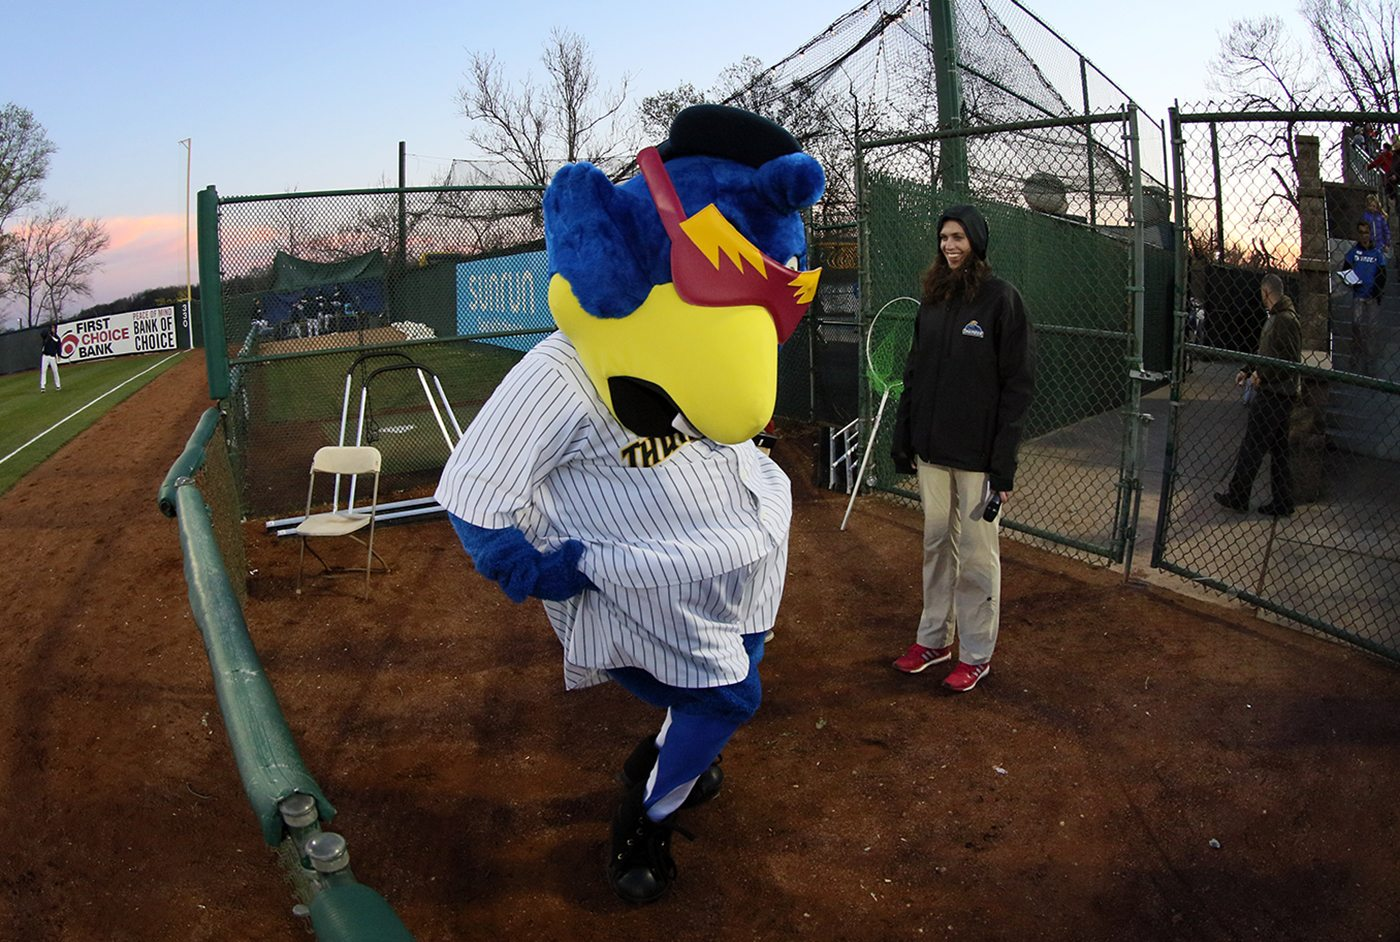 Trenton Thunder mascot Boomer strikes a pose for the camera between innings of a game between the Trenton and Portland Sea Dogs at Arm & Hammer Park in Trenton on Tuesday, April 12, 2016. Photo by Martin Griff